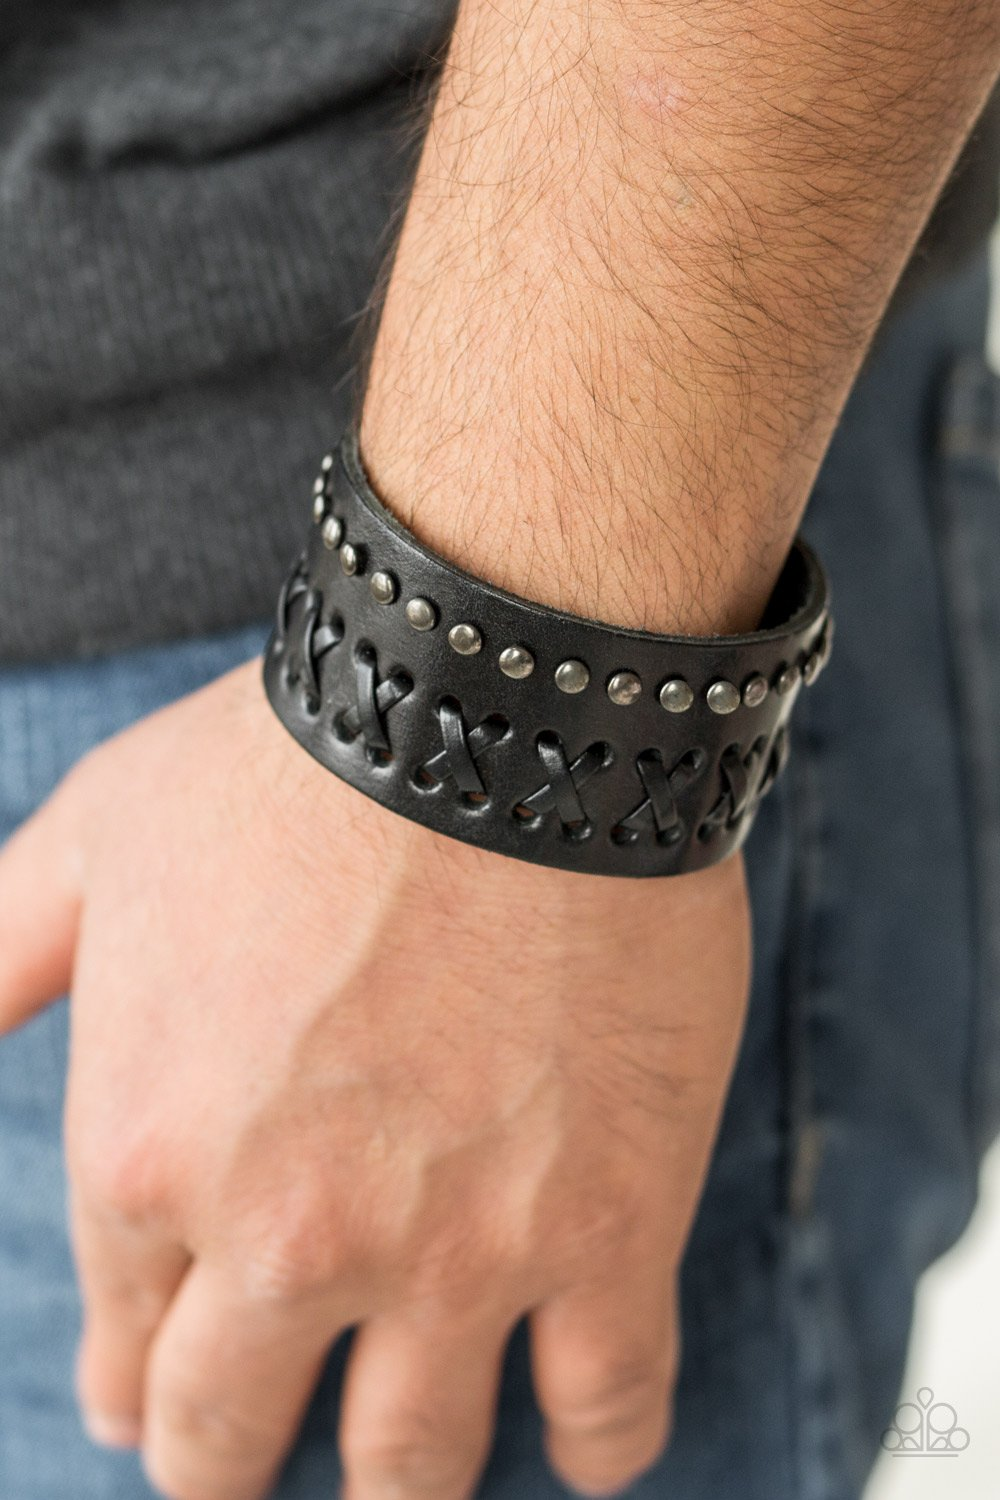 Recklessly Rebel - Black Leather Urban Bracelet - Paparazzi Accessories